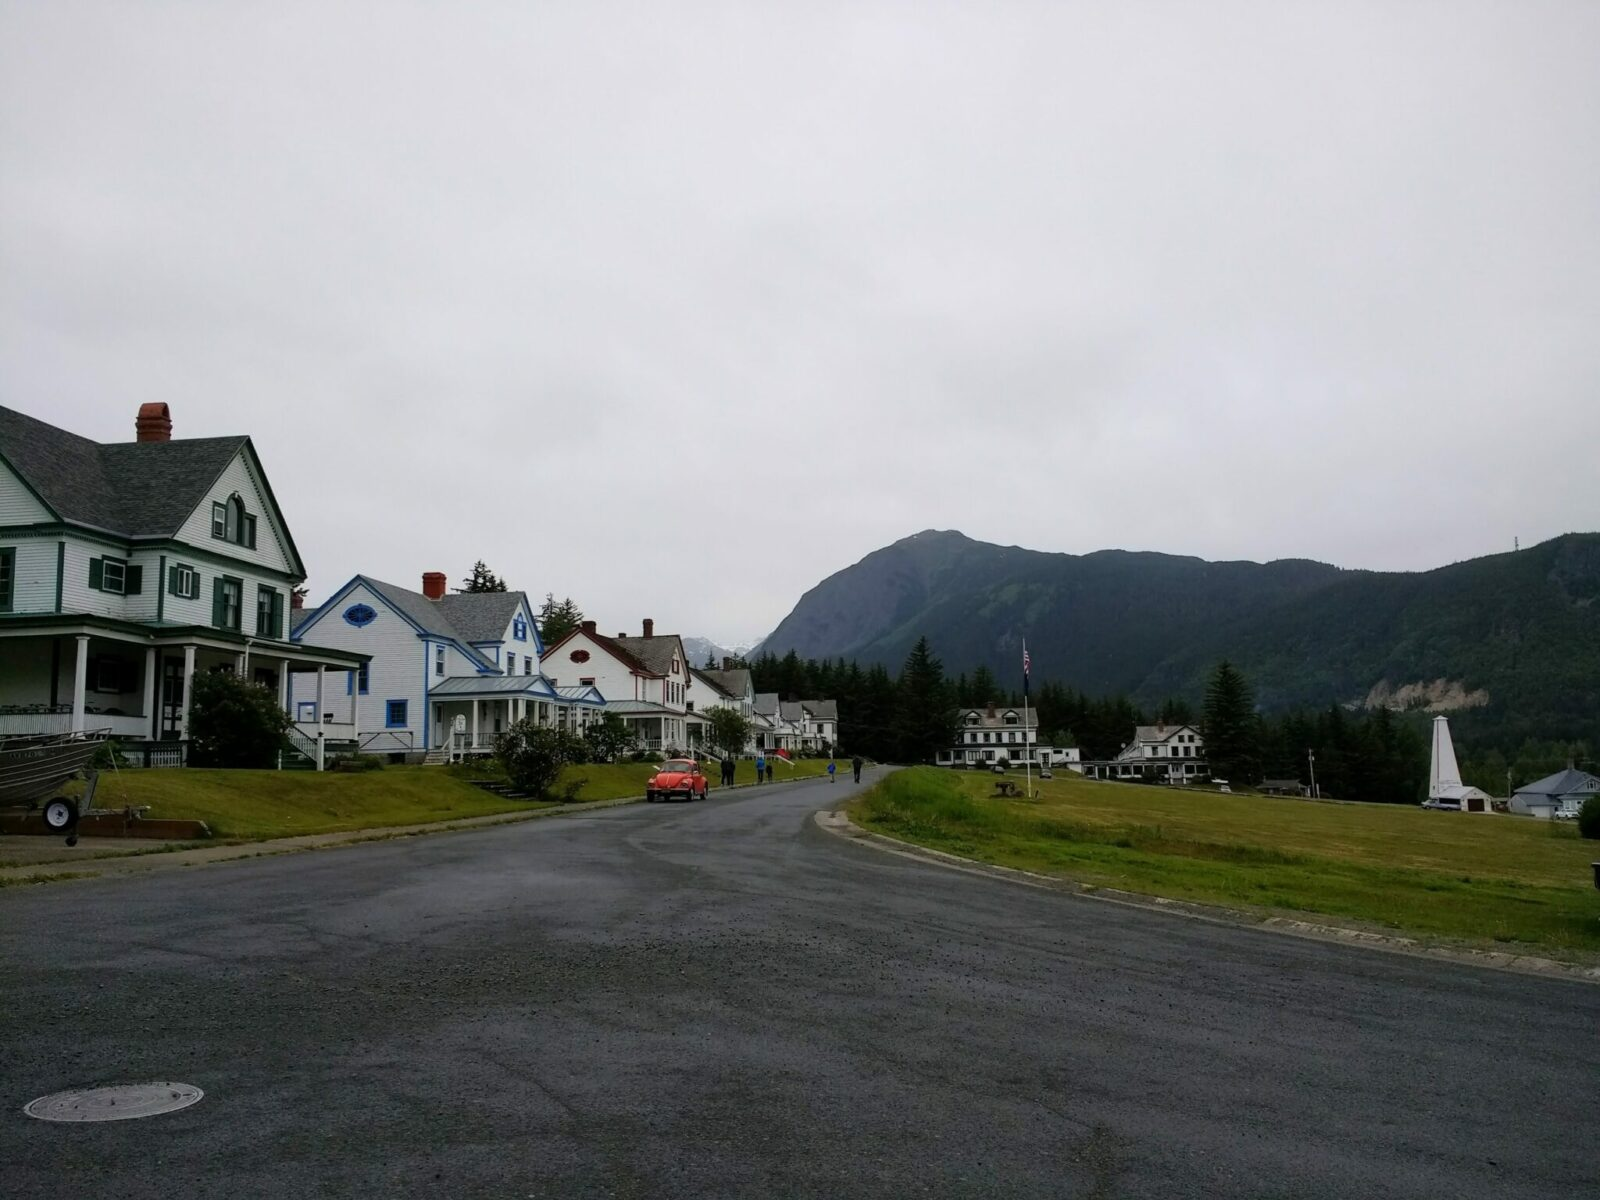 Historic Fort Seward in Haines, Alaska. There is a paved road going by historic army officers housing and a large parade green on the other side of the road. Mountains are in the distance